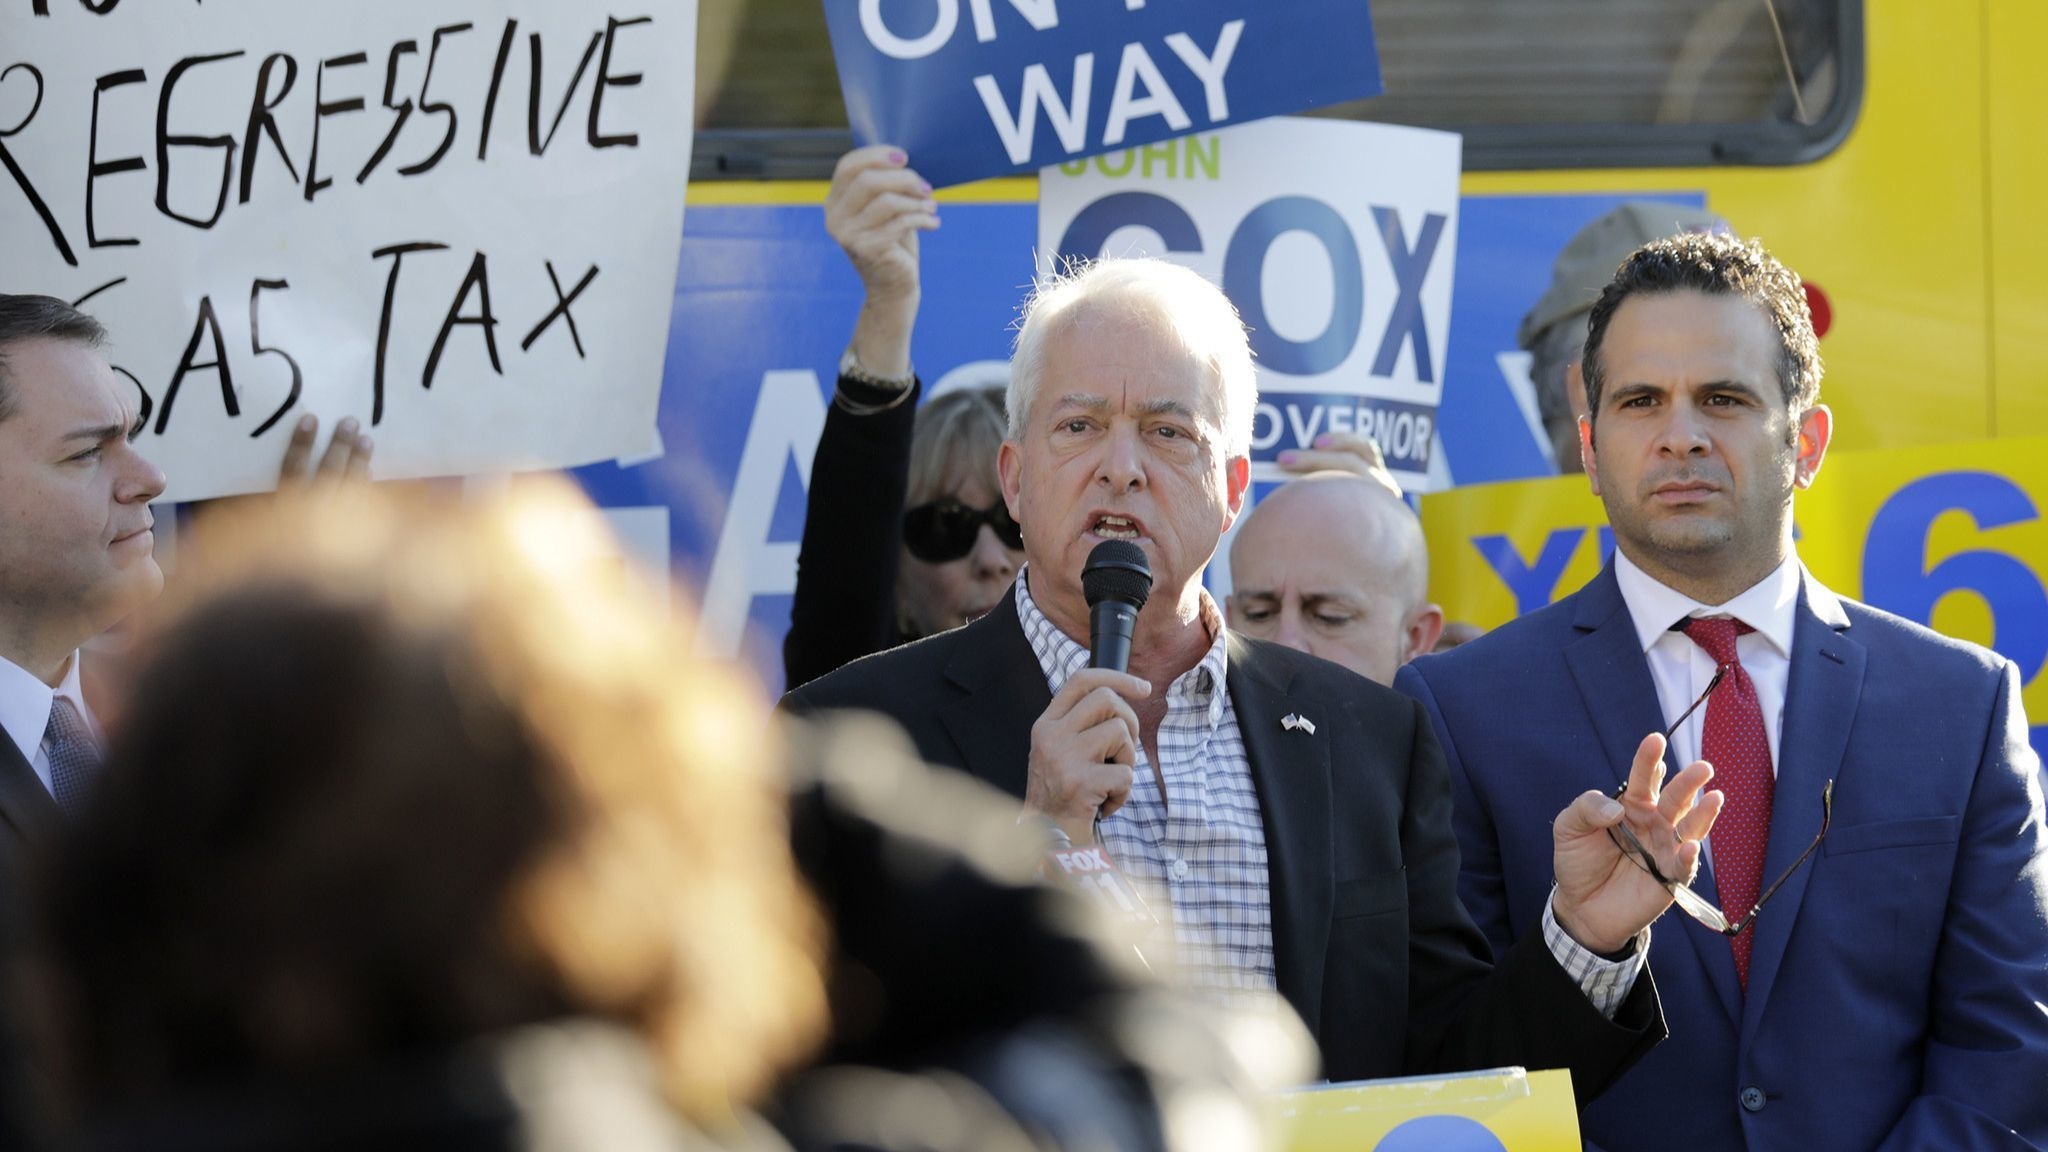 John Cox campaigns for Proposition 6